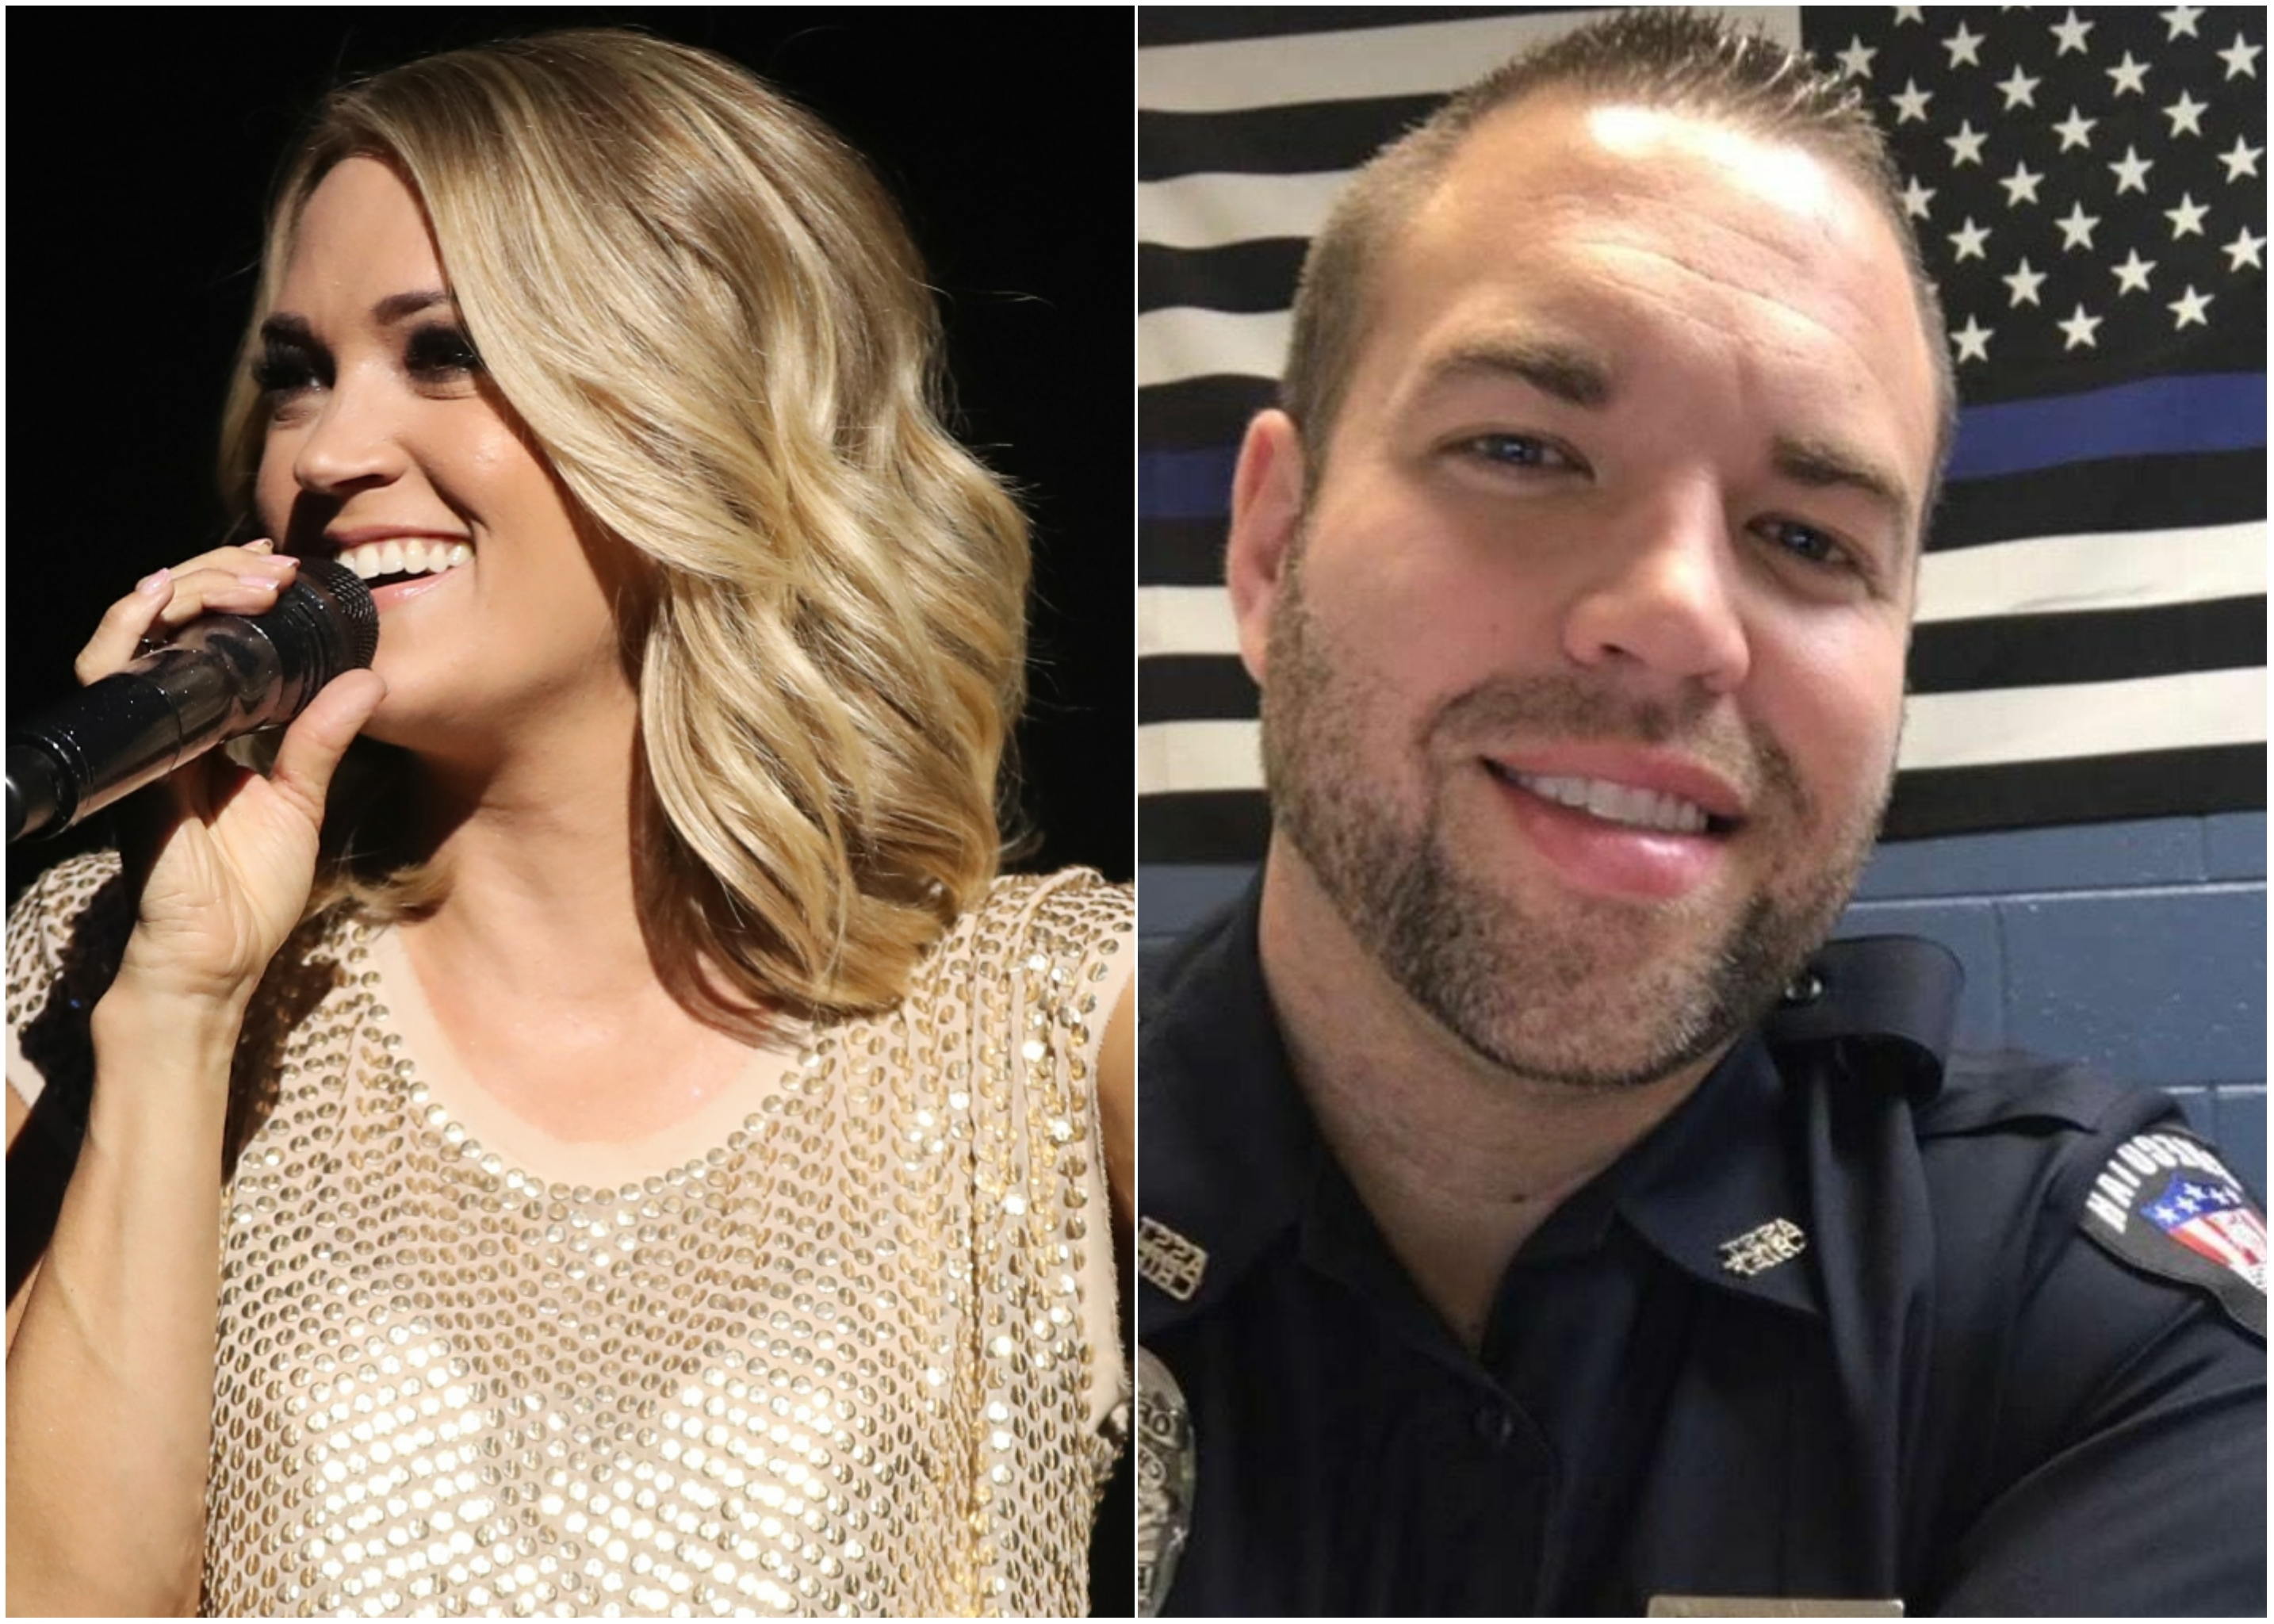 Carrie Underwood Donates $10K To Police Officer Friend